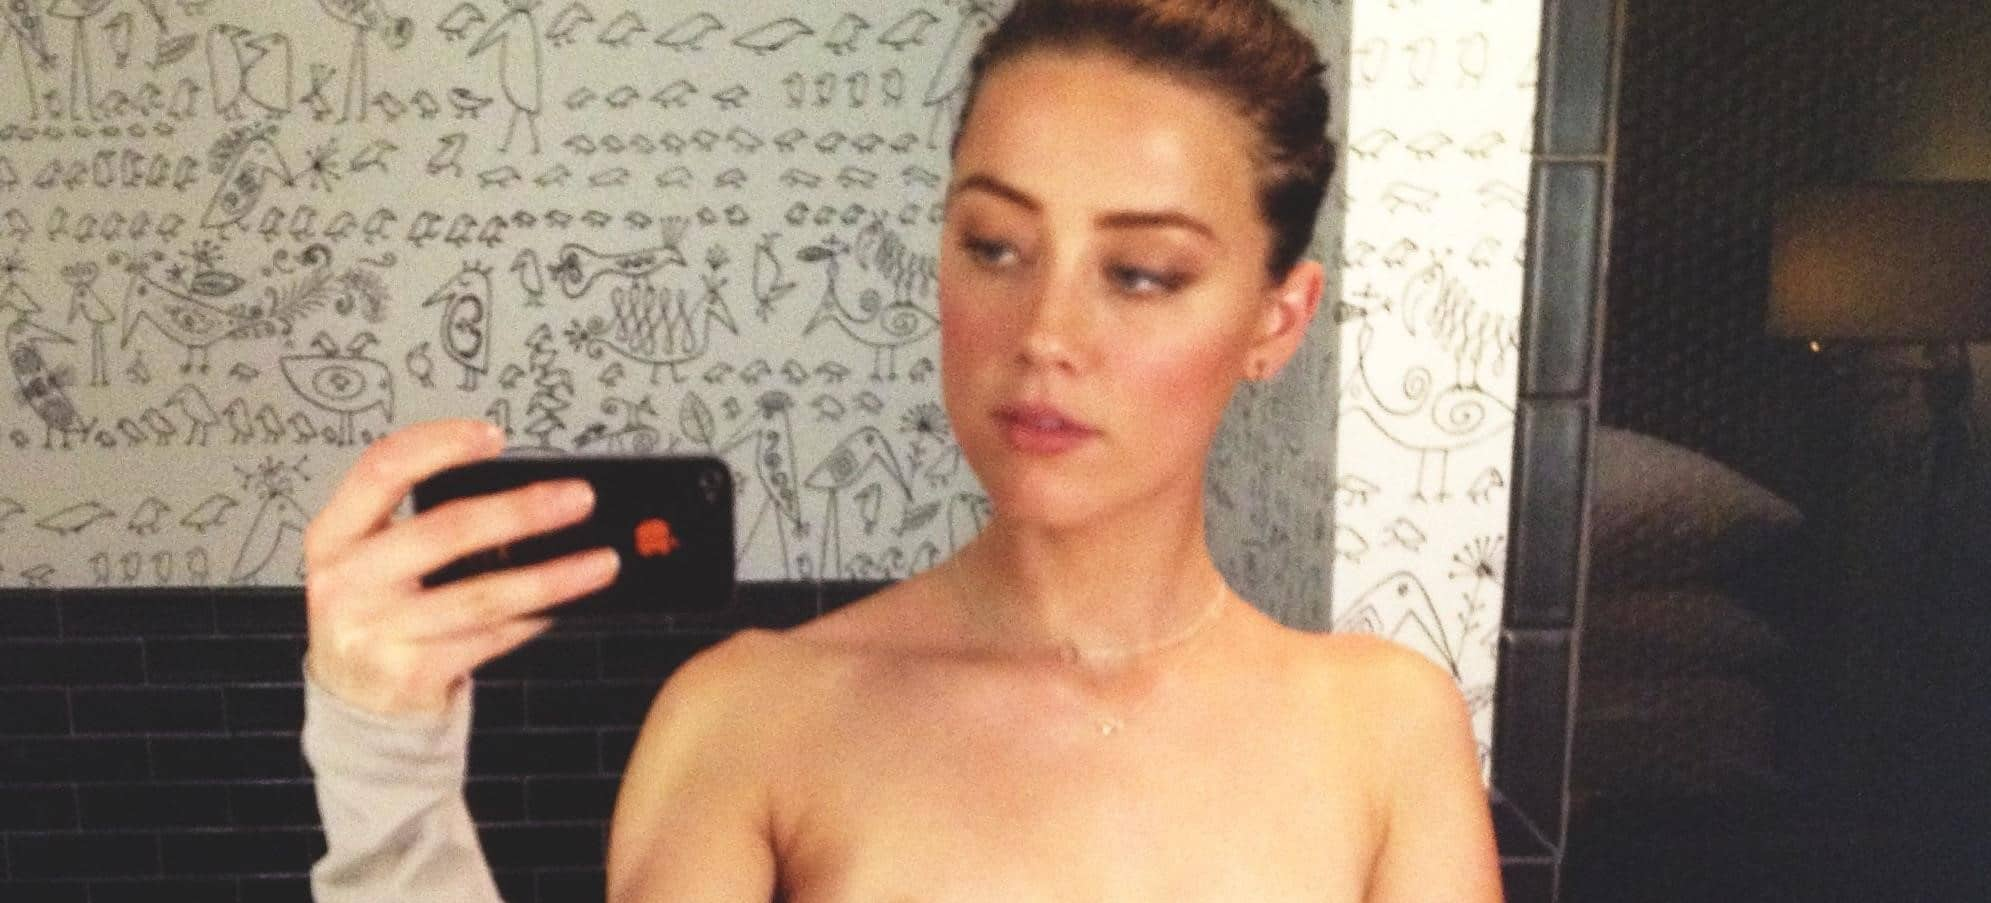 Amber Heard Topless full collection: amber heard nudes from the fappening (unseen!)